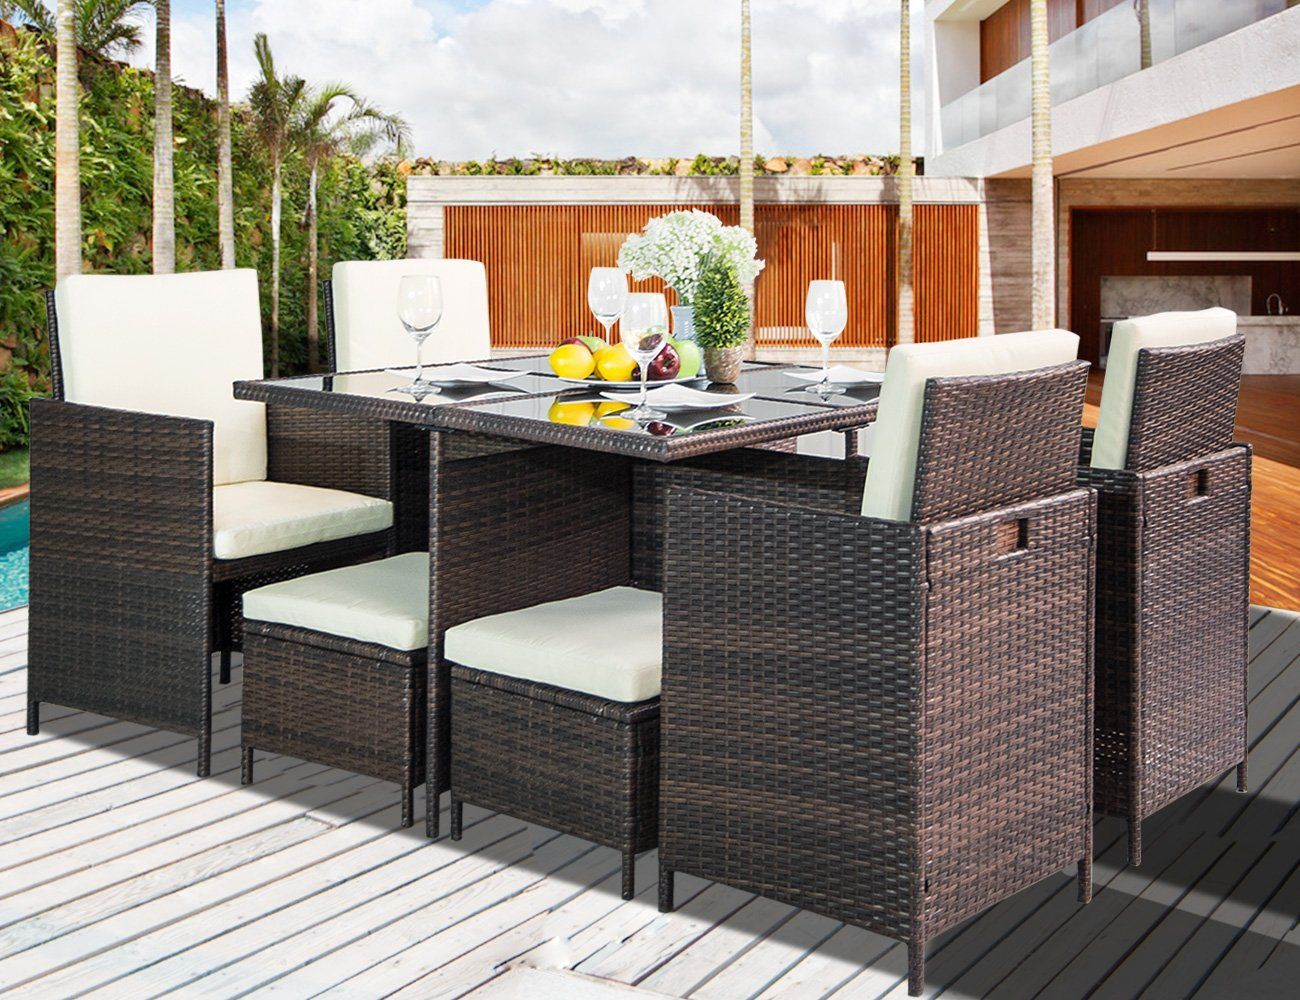 This Outdoor Rattan Wicker Patio Dining Table Set Has Cushions For